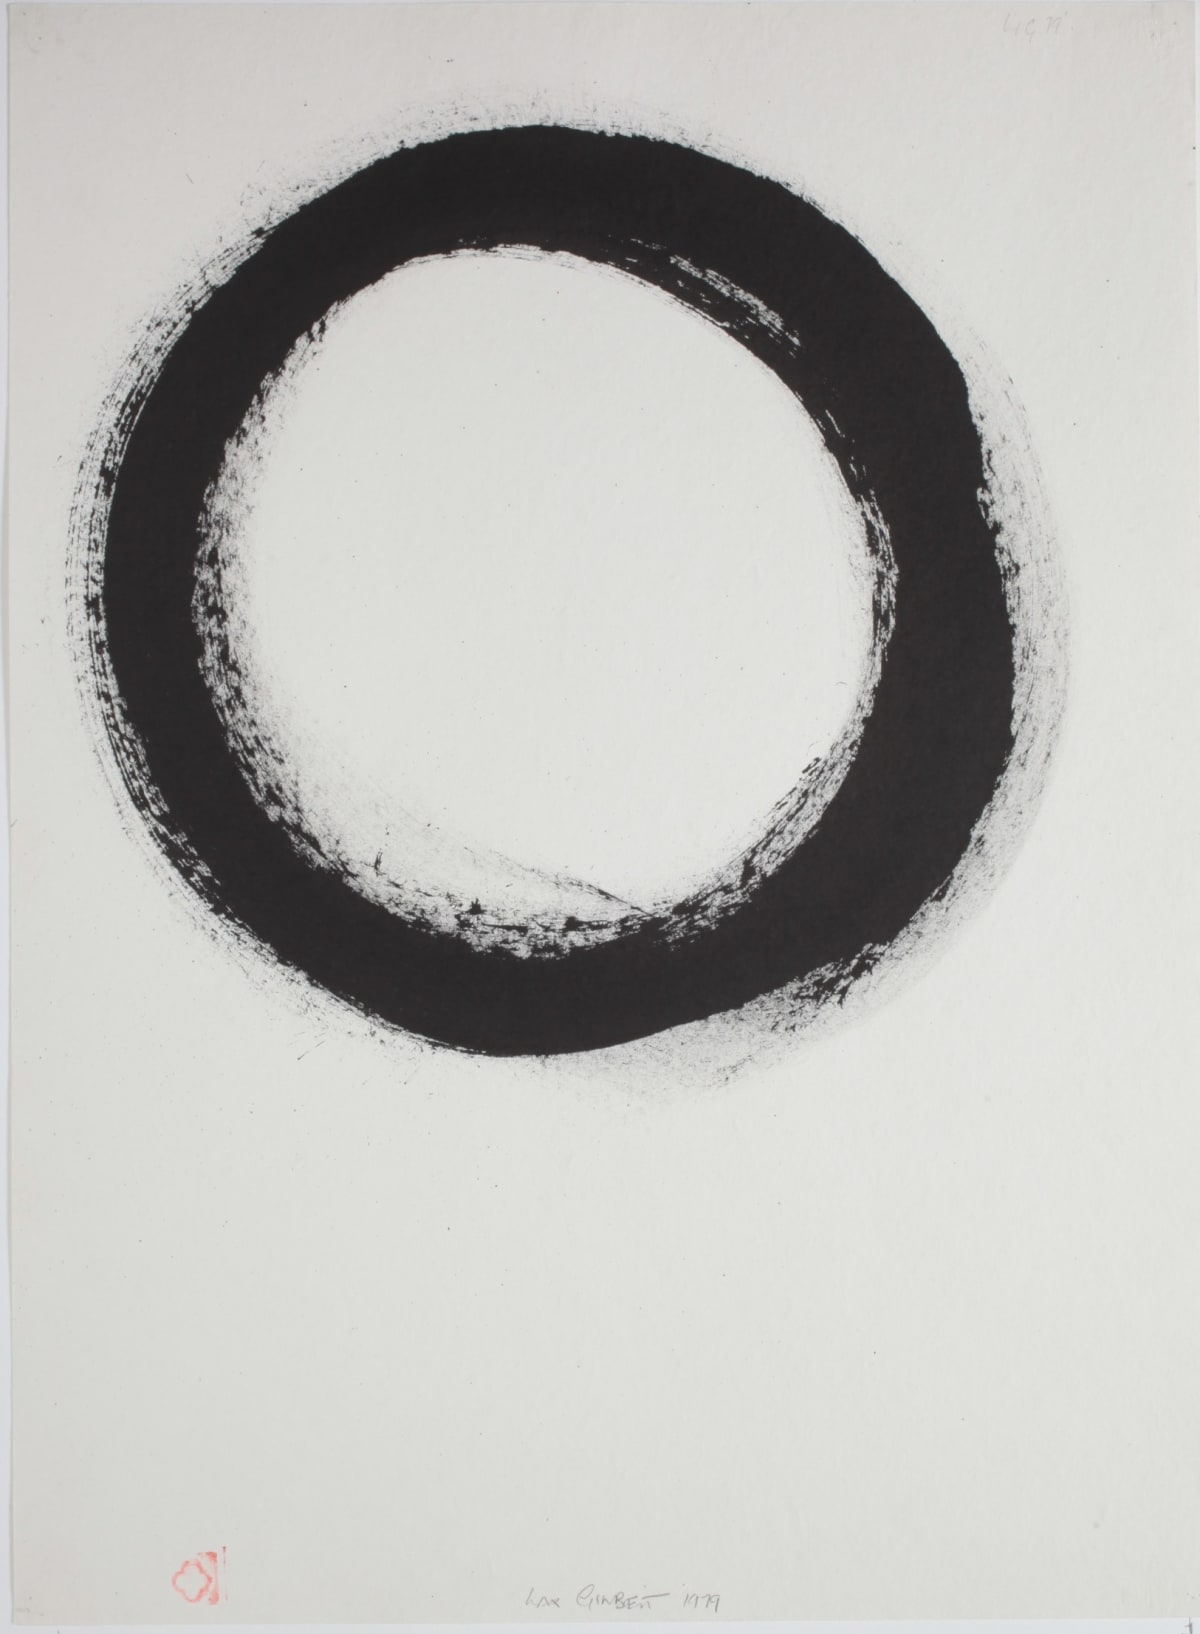 Max GIMBLETT Character - No. 1 Son, 1979 Sumi ink on hand made paper 30 x 22 in 76.2 x 55.9 cm